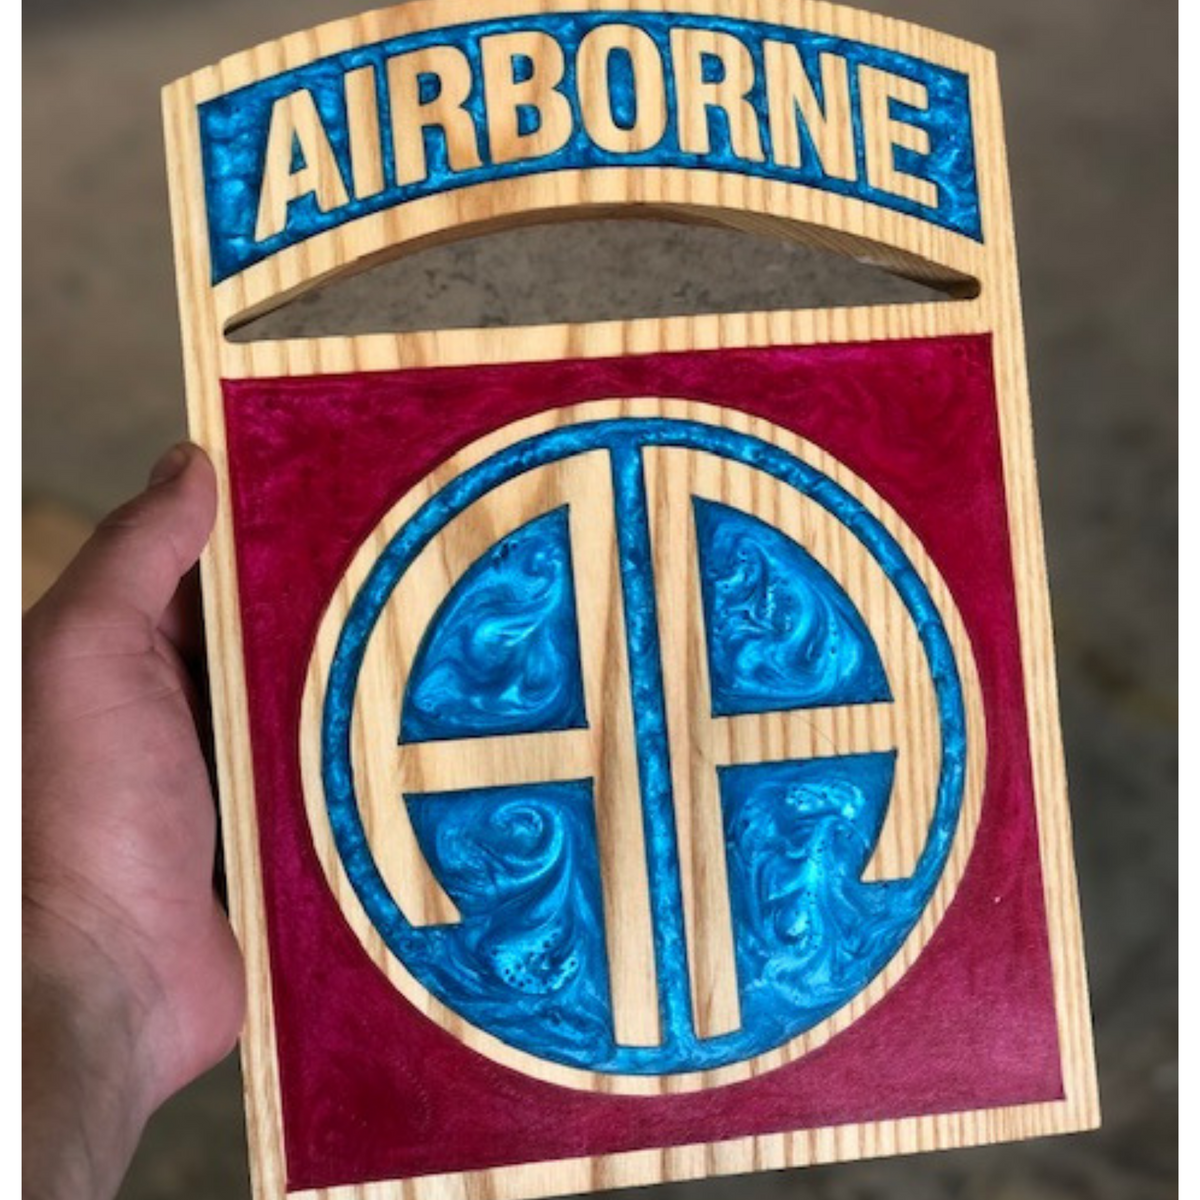 82nd Airborne Patch Wall Hanging